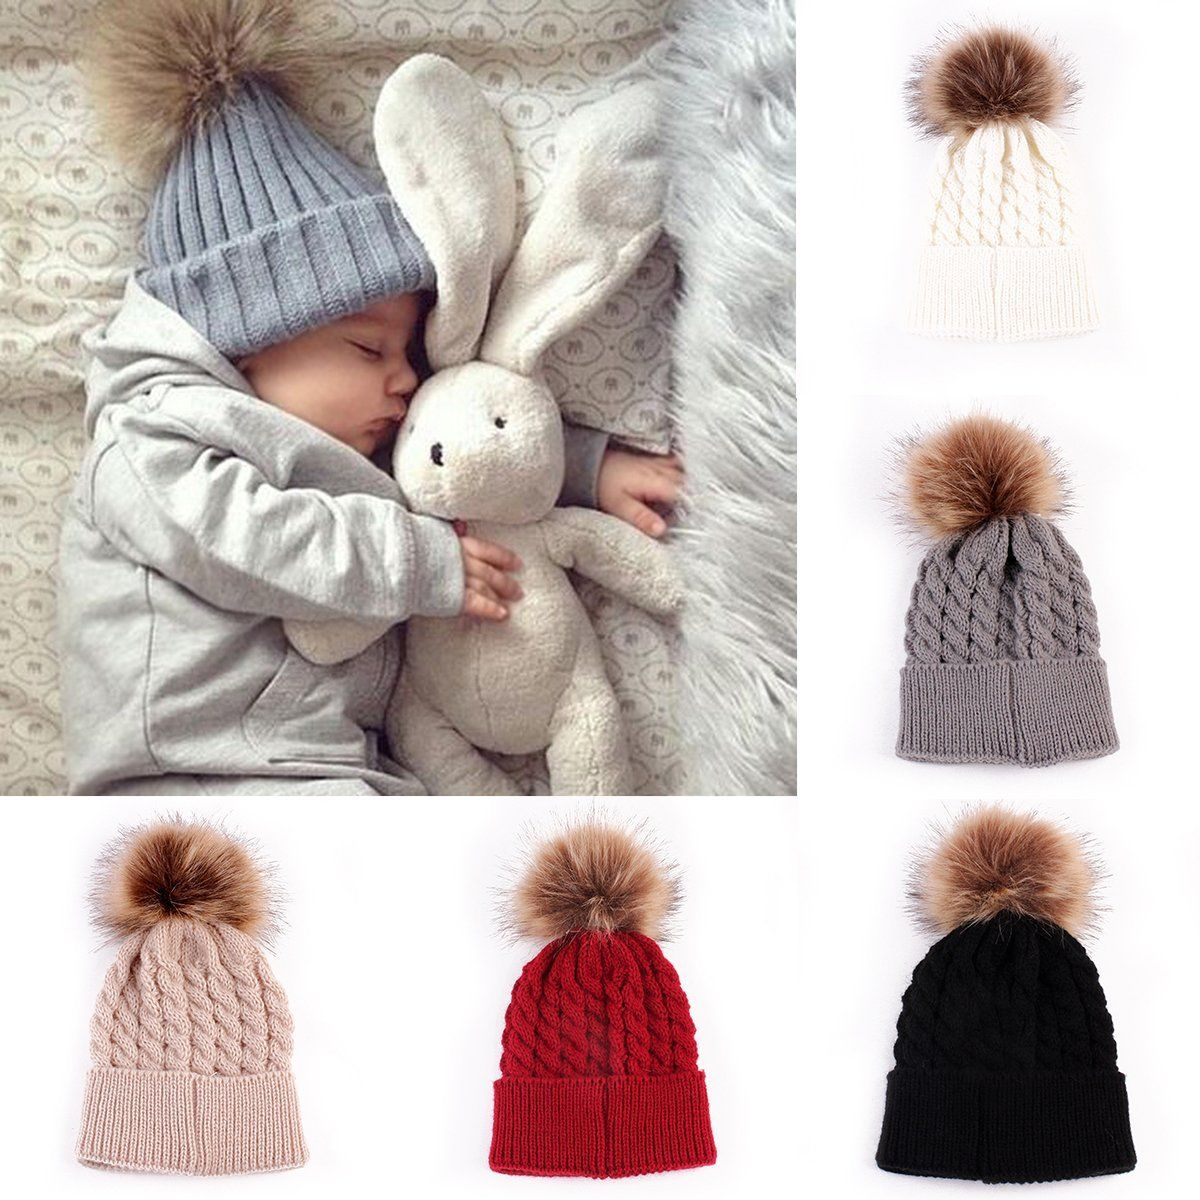 Infant Winter Warm Knit Crochet Caps Baby Beanie Hat Toddler Kid Faux Fur pom pom Knit skullies ski Cap 0-3 years baseus guards case tpu tpe cover for iphone 7 red